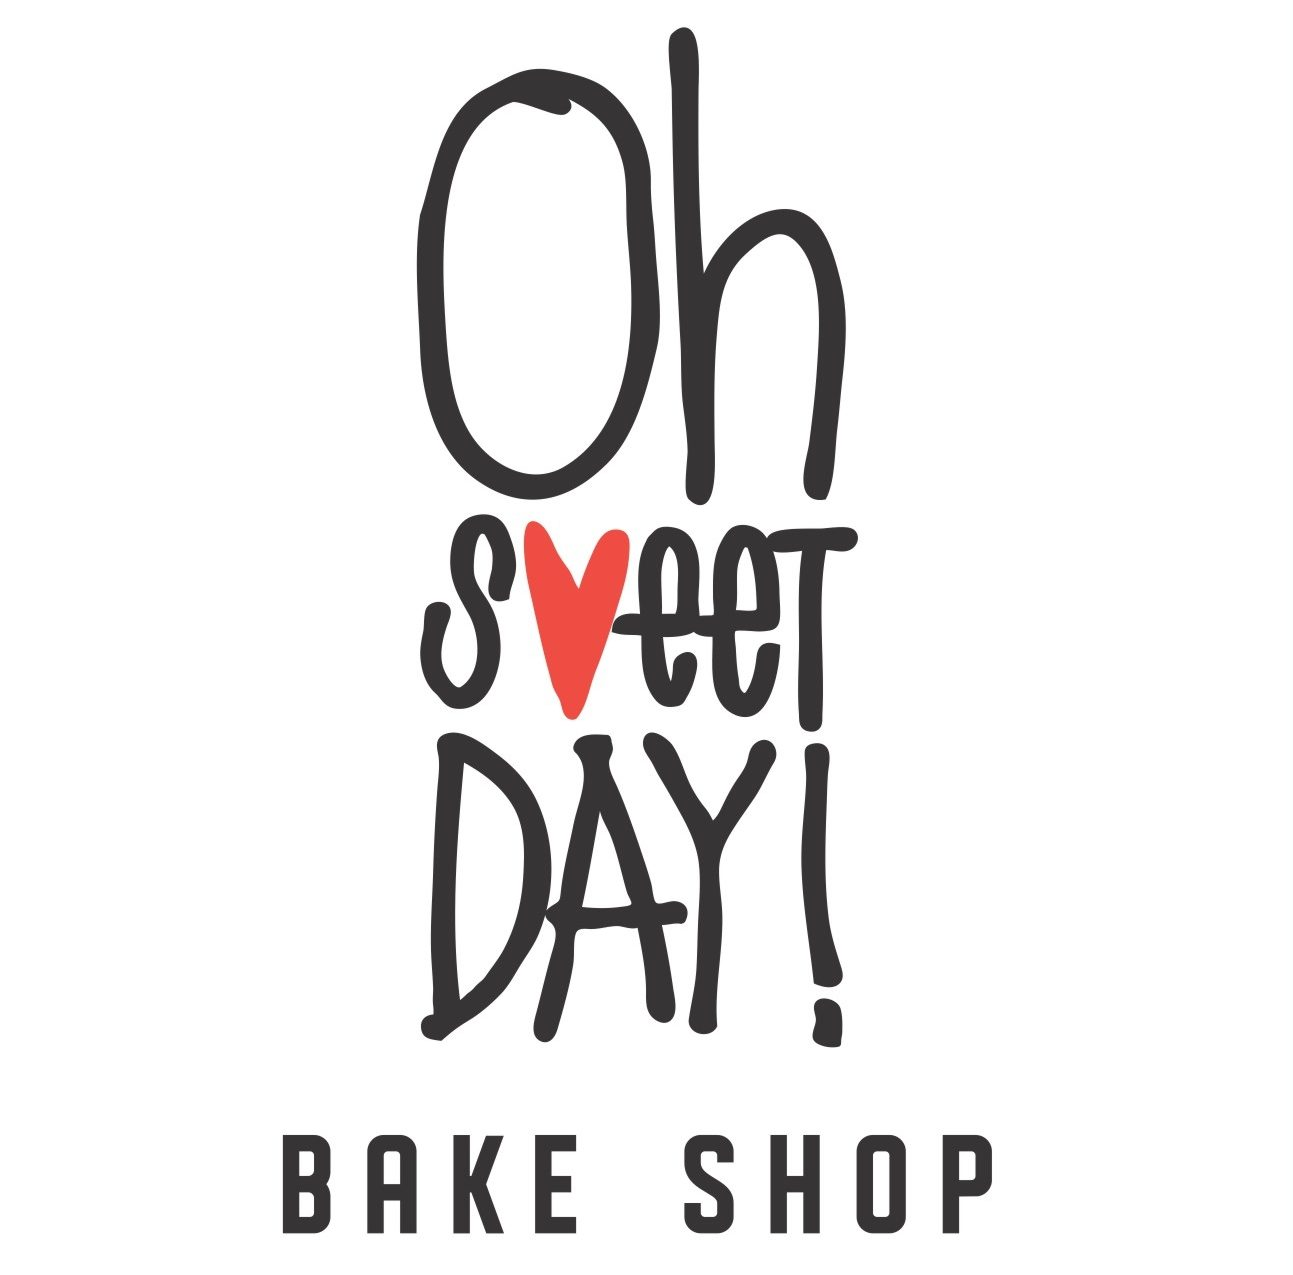 Oh Sweet Day! Bake Shop